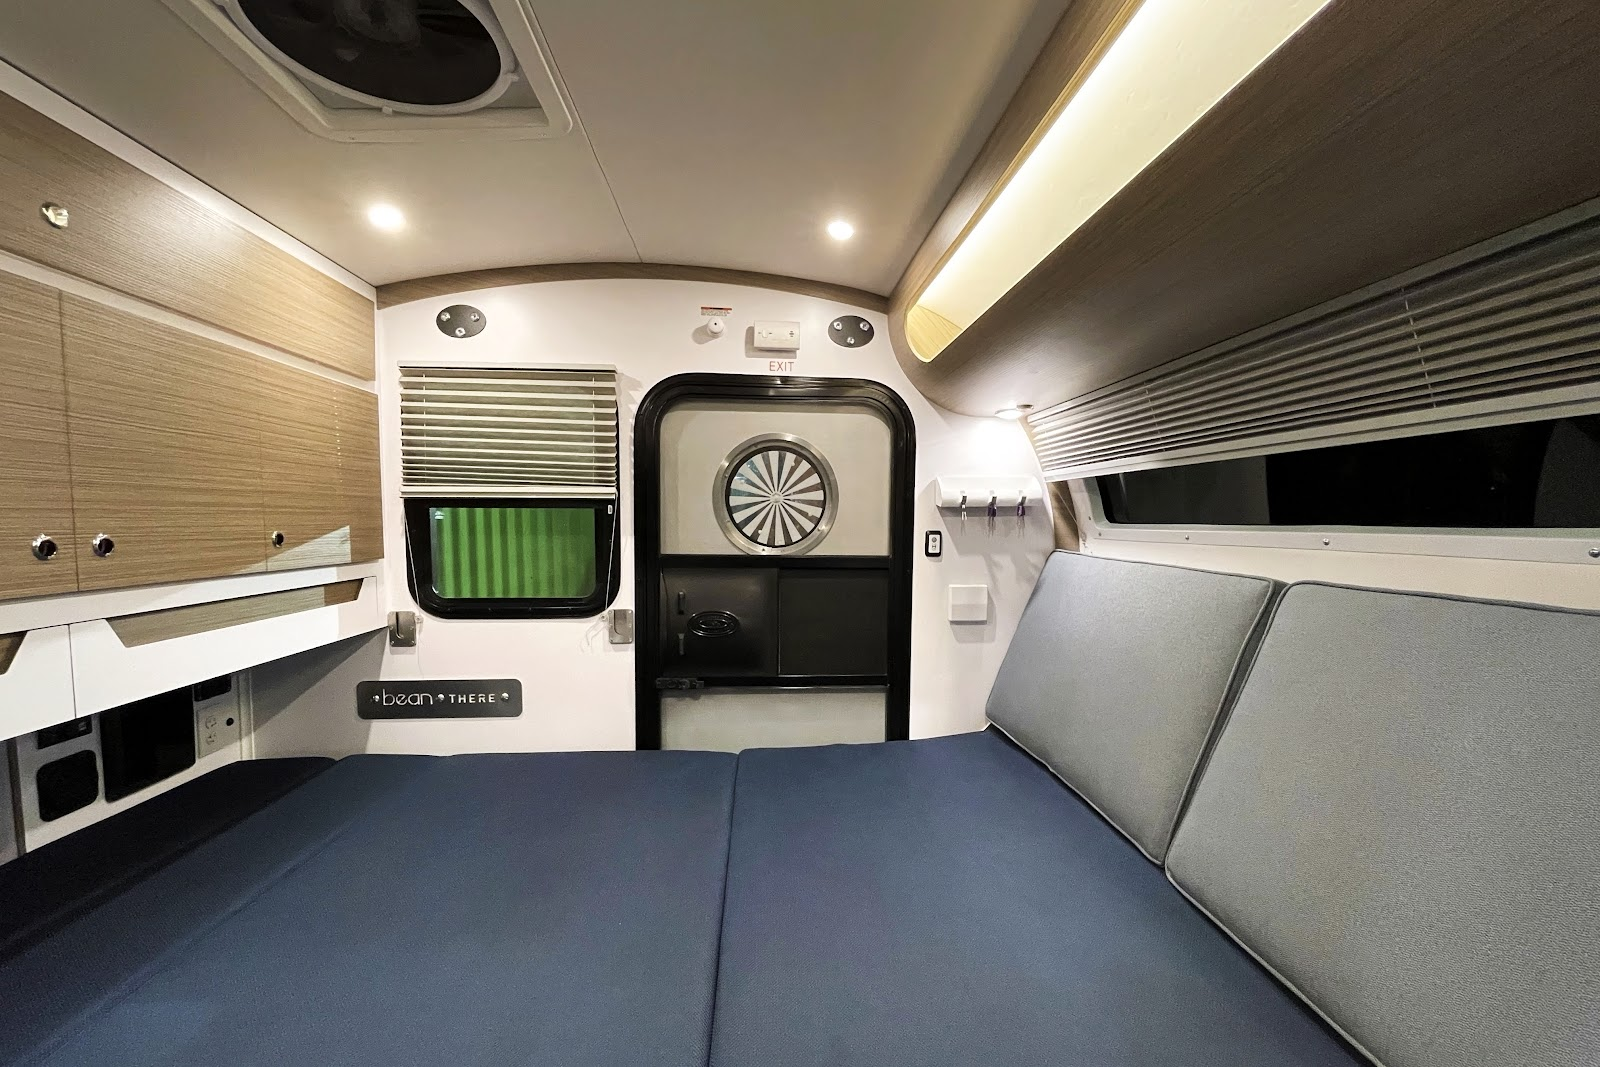 Mean Bean teardrop camper interior with cushions laid out to make a queen size bed.